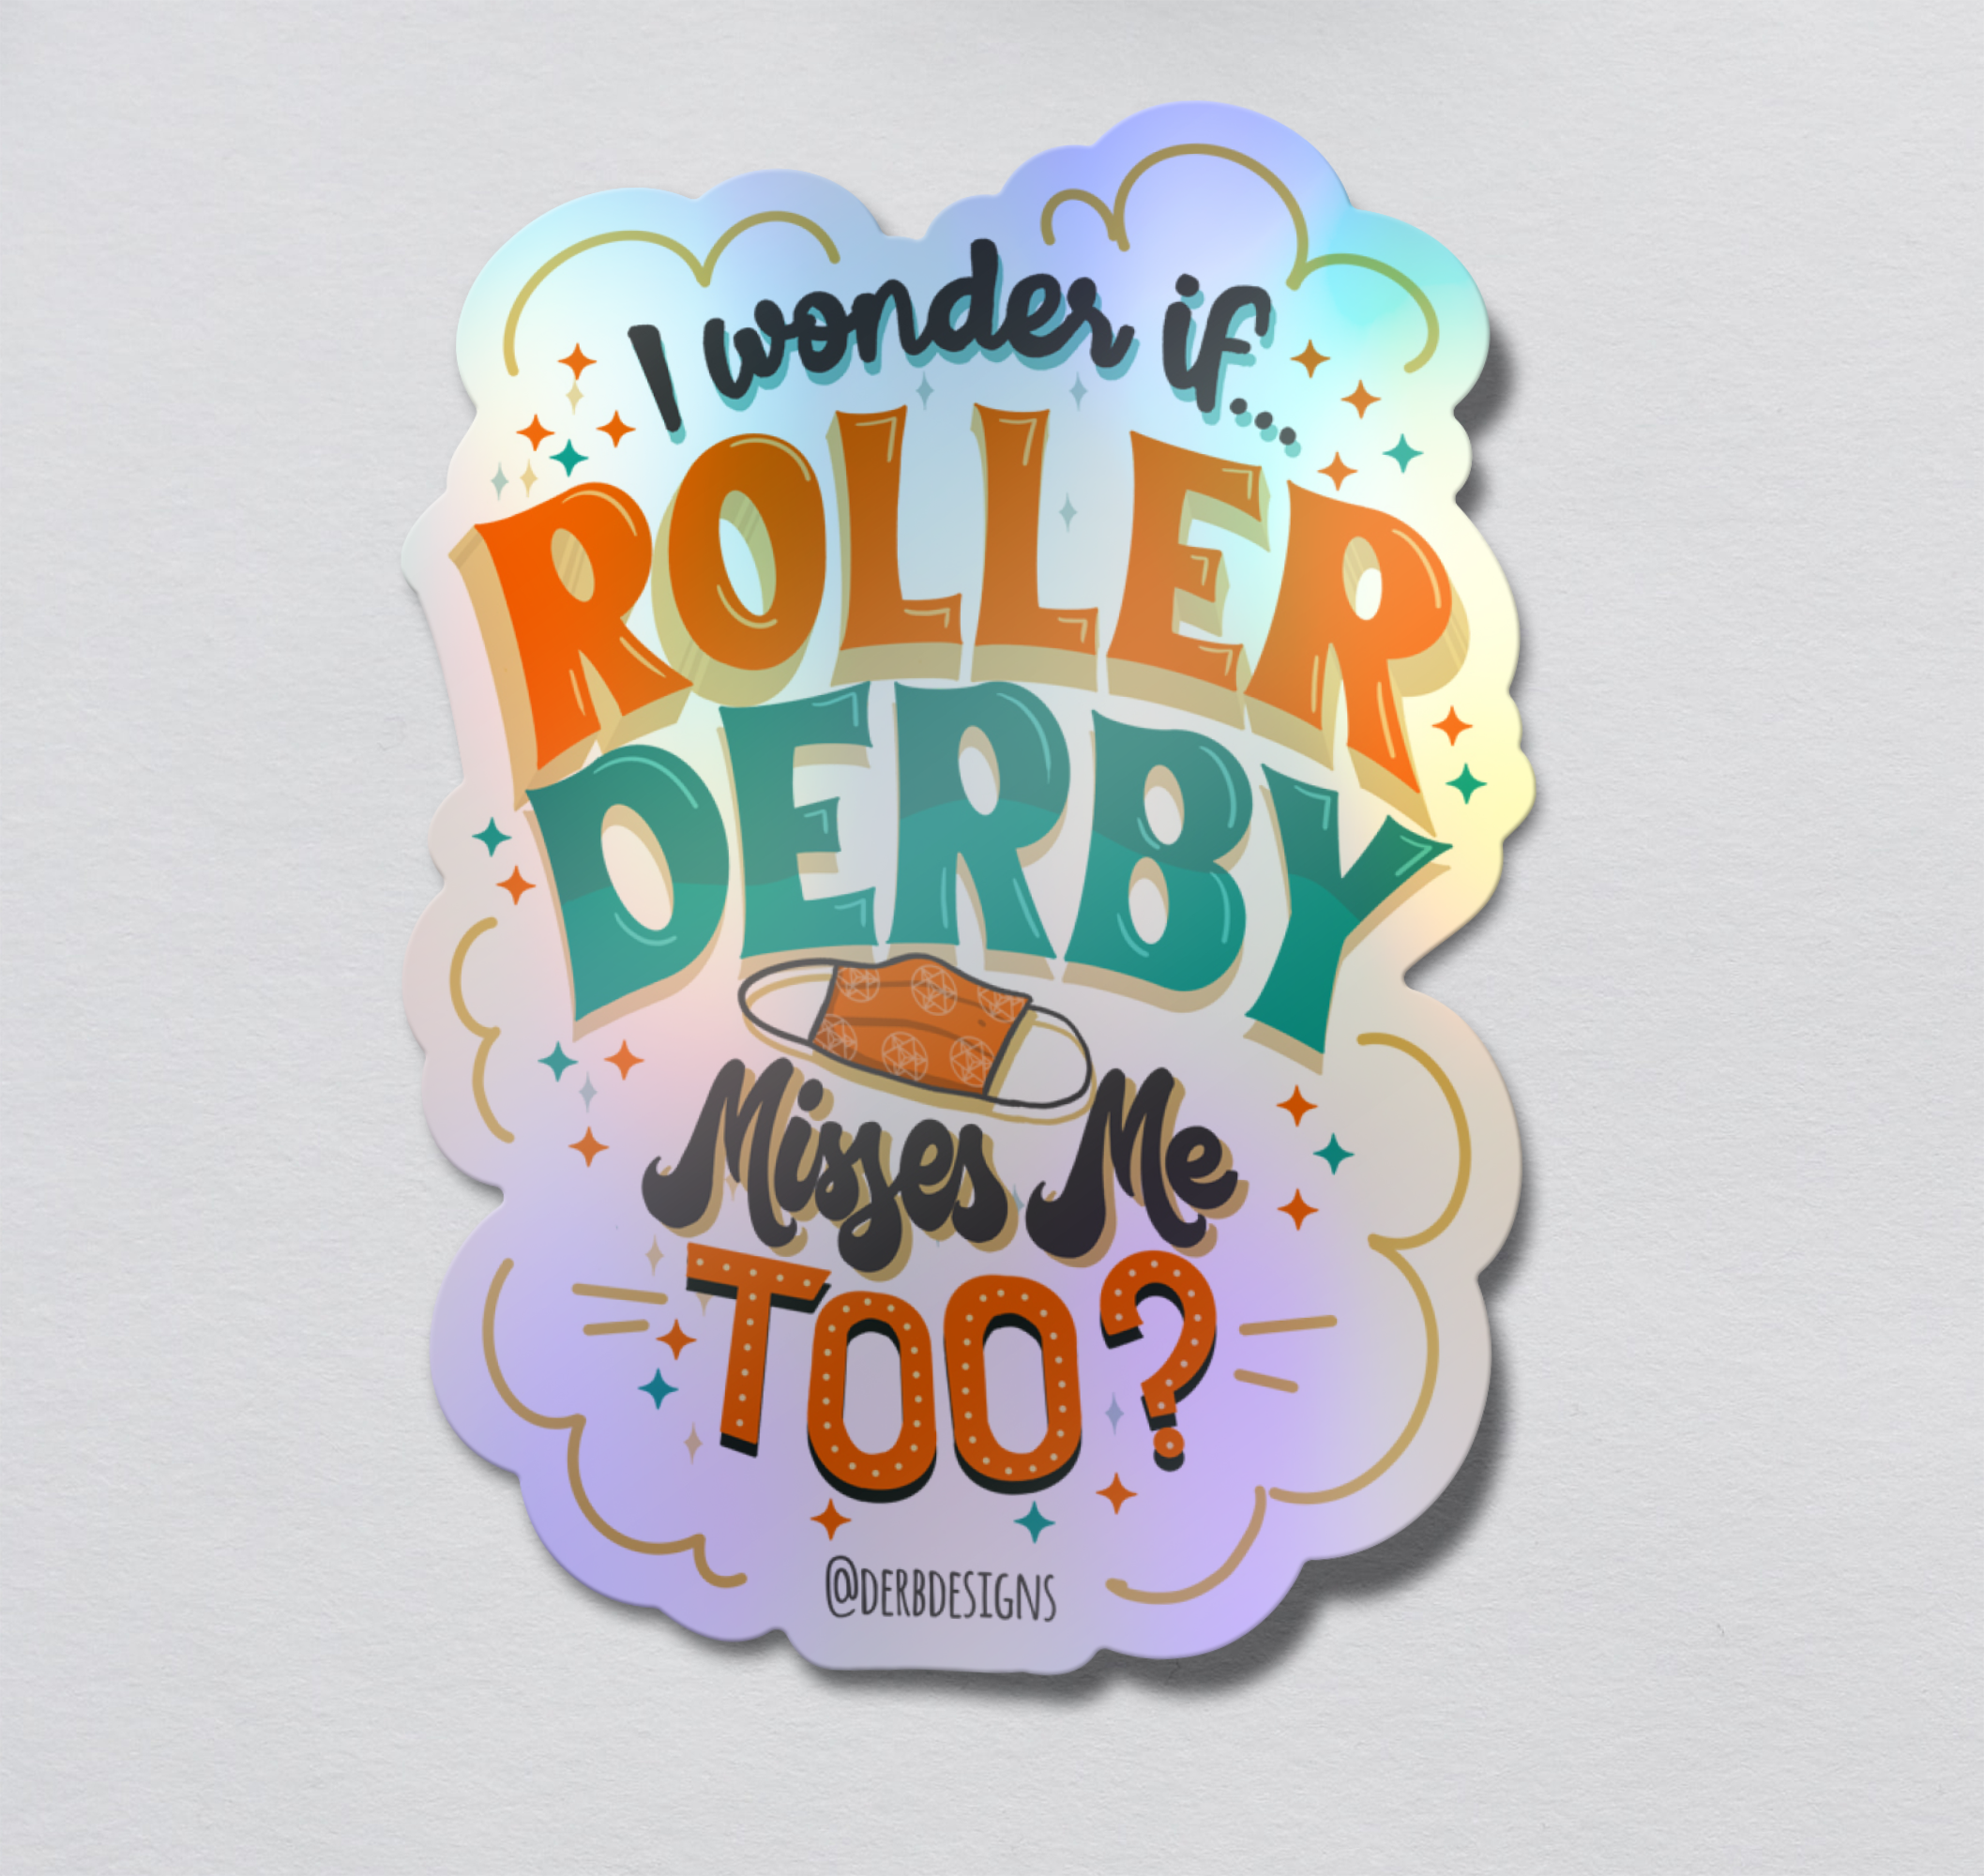 I wonder if Roller Derby Misses Me Too? Text only 3″ Laminated Holographic vinyl sticker